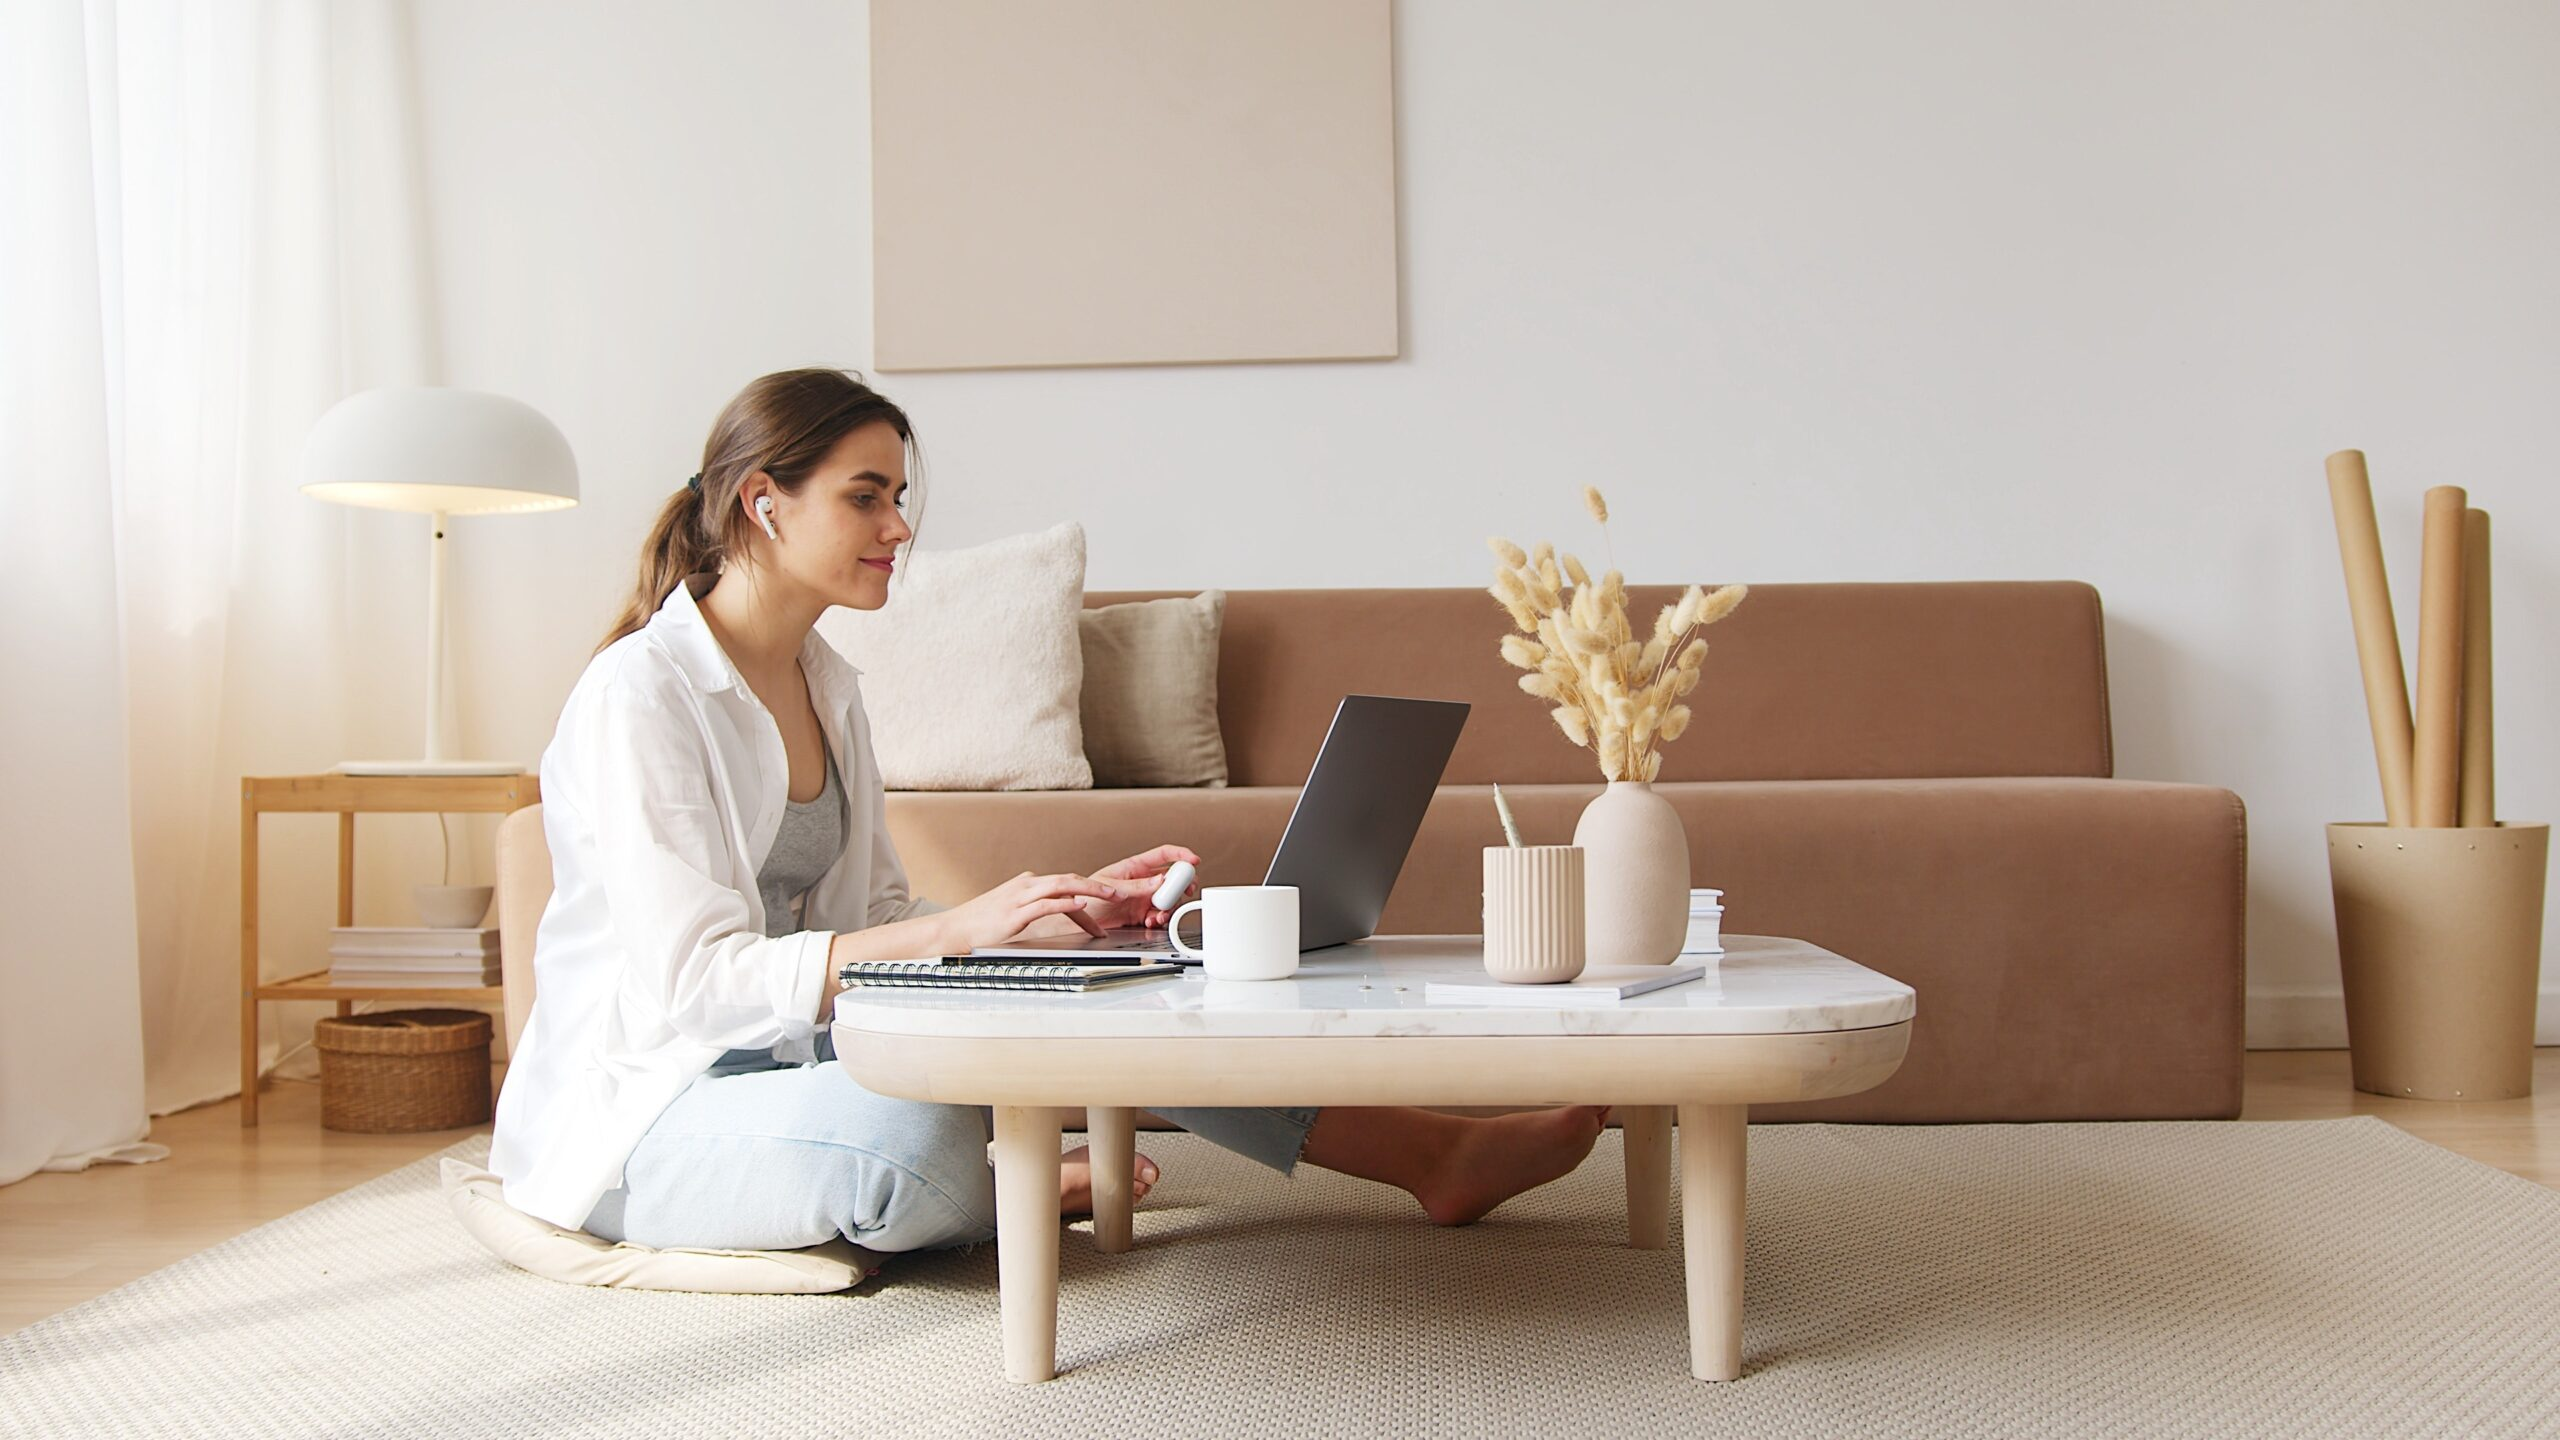 A woman working on her laptop on a coffee table